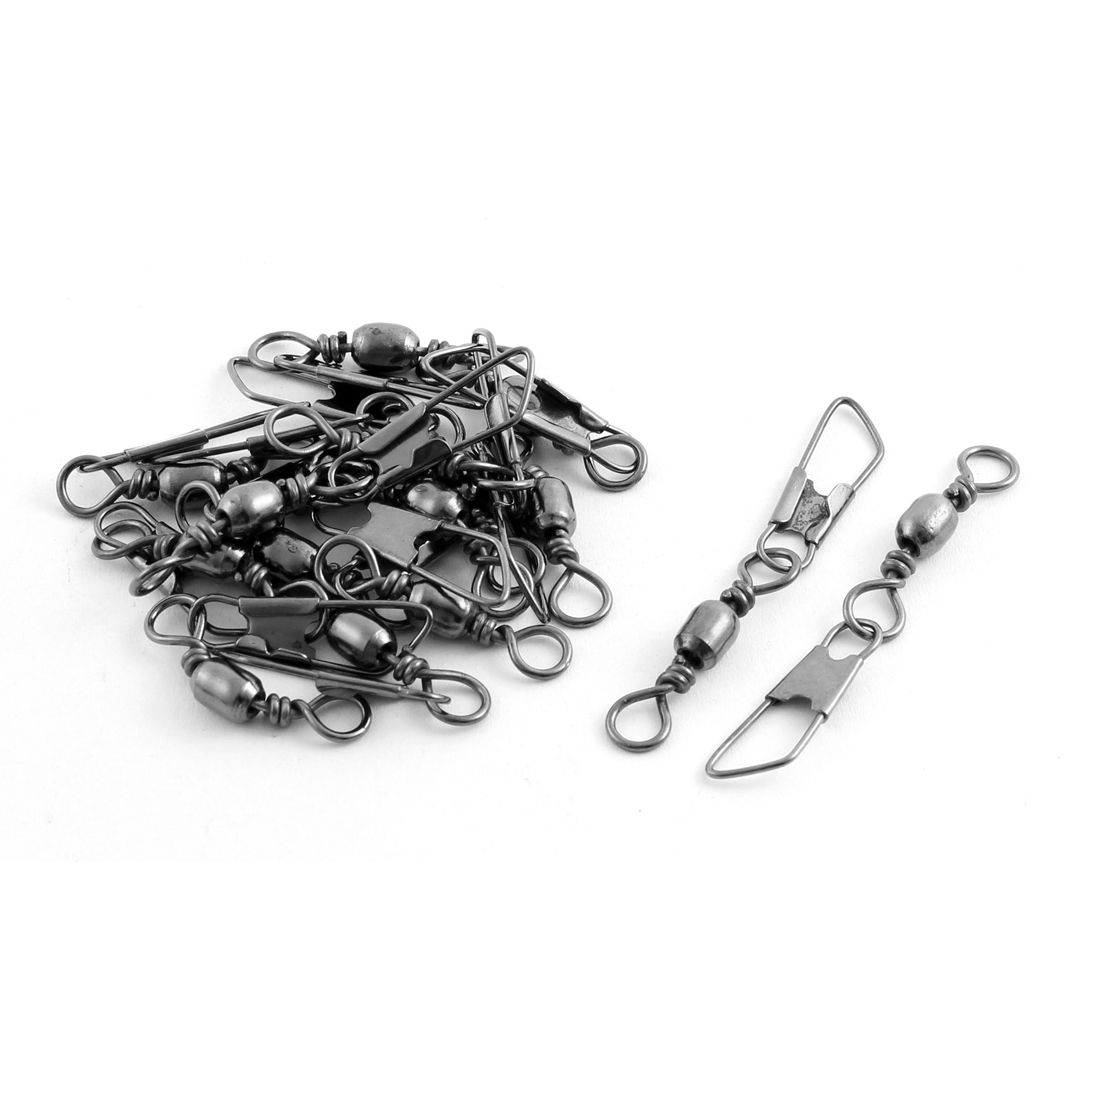 16 Pcs Dark Gray Metal Rolling Fishing Line Snap Hook Shank Swivel Clip Connectors